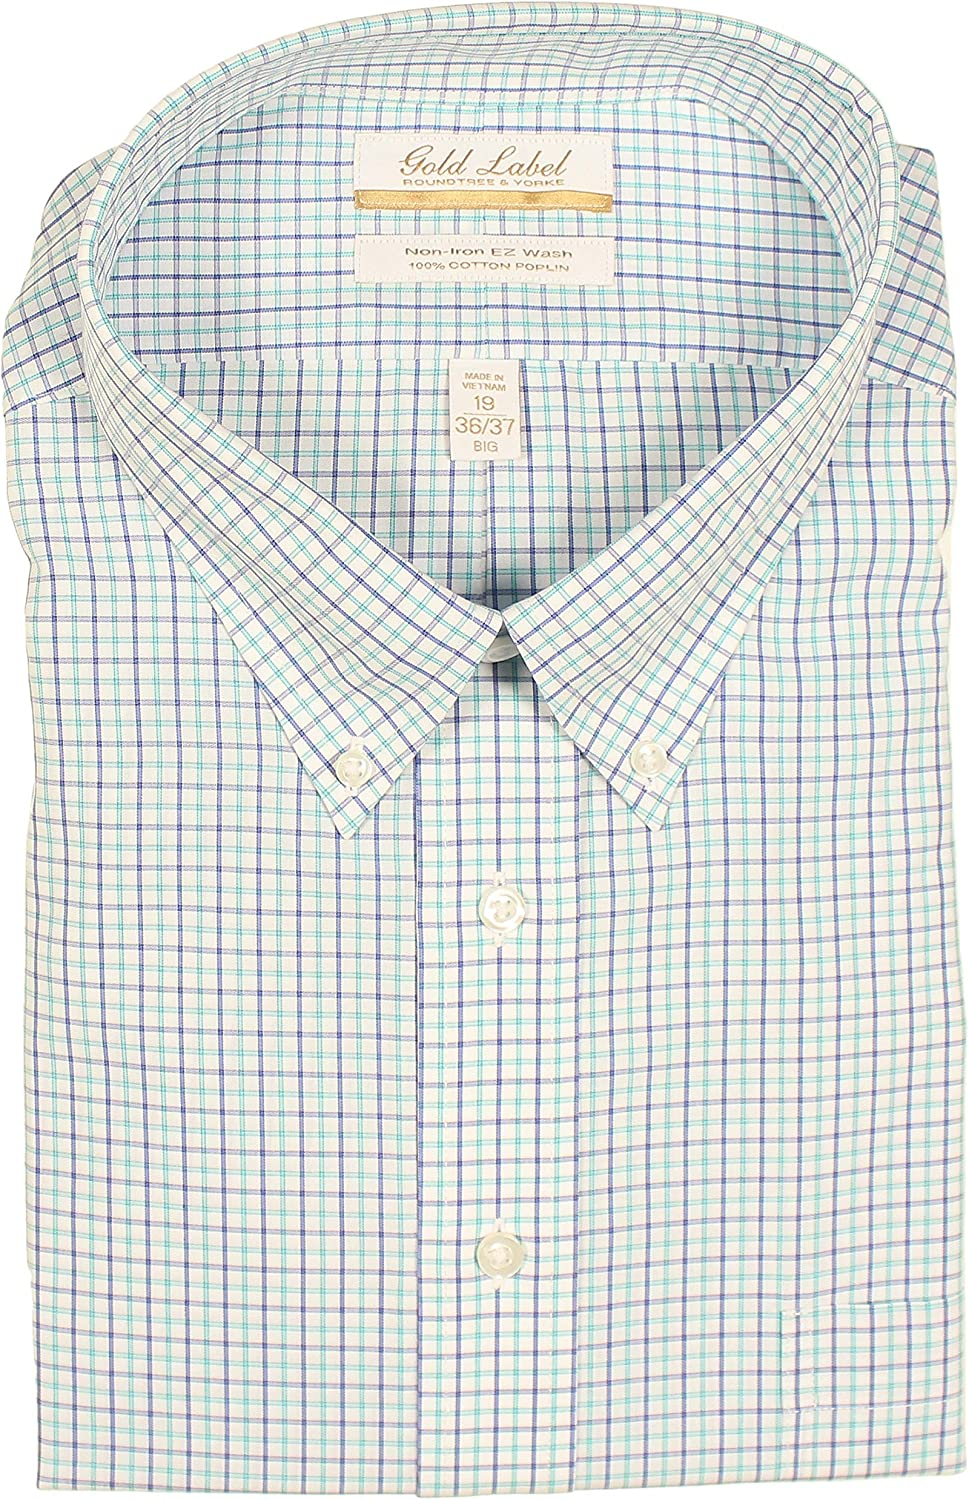 Gold Label Men's Non-Iron Wrinkle-Resistant Long Sleeve Dress Shirt with Button-Down Collar (Aqua 015, 18 x 34)